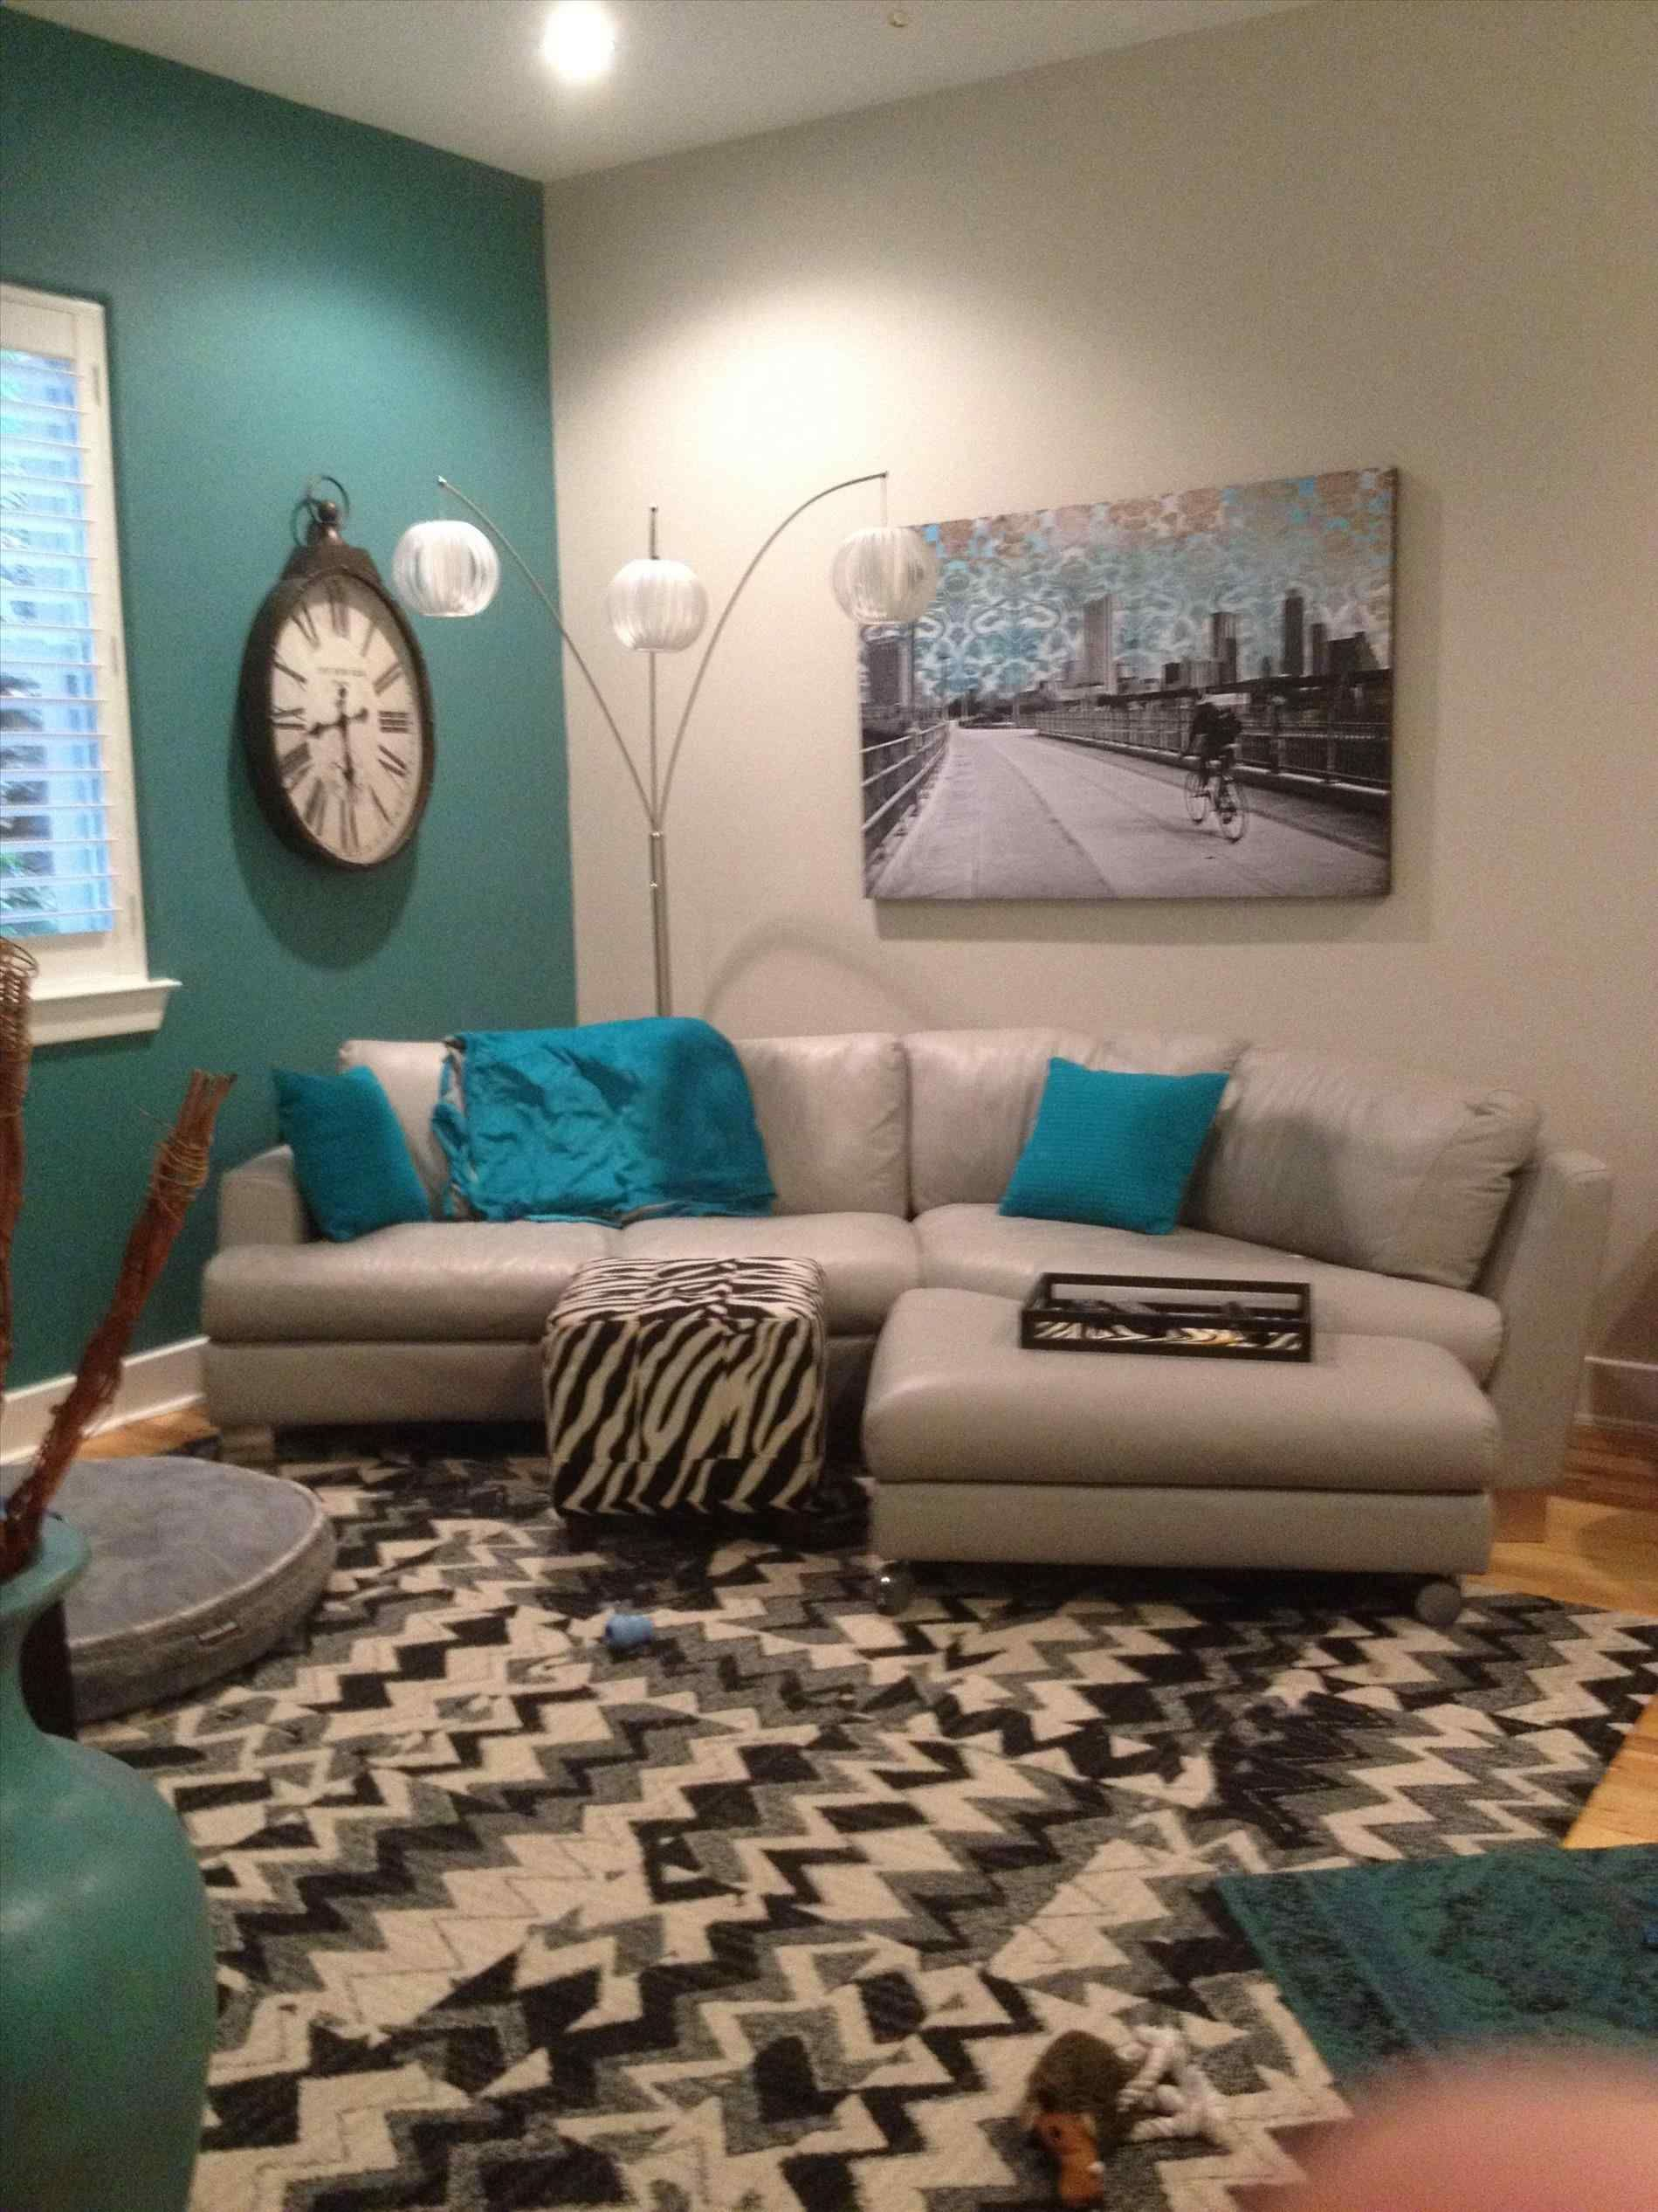 Amazing Home Decorating With Turquoise Accents Ideas